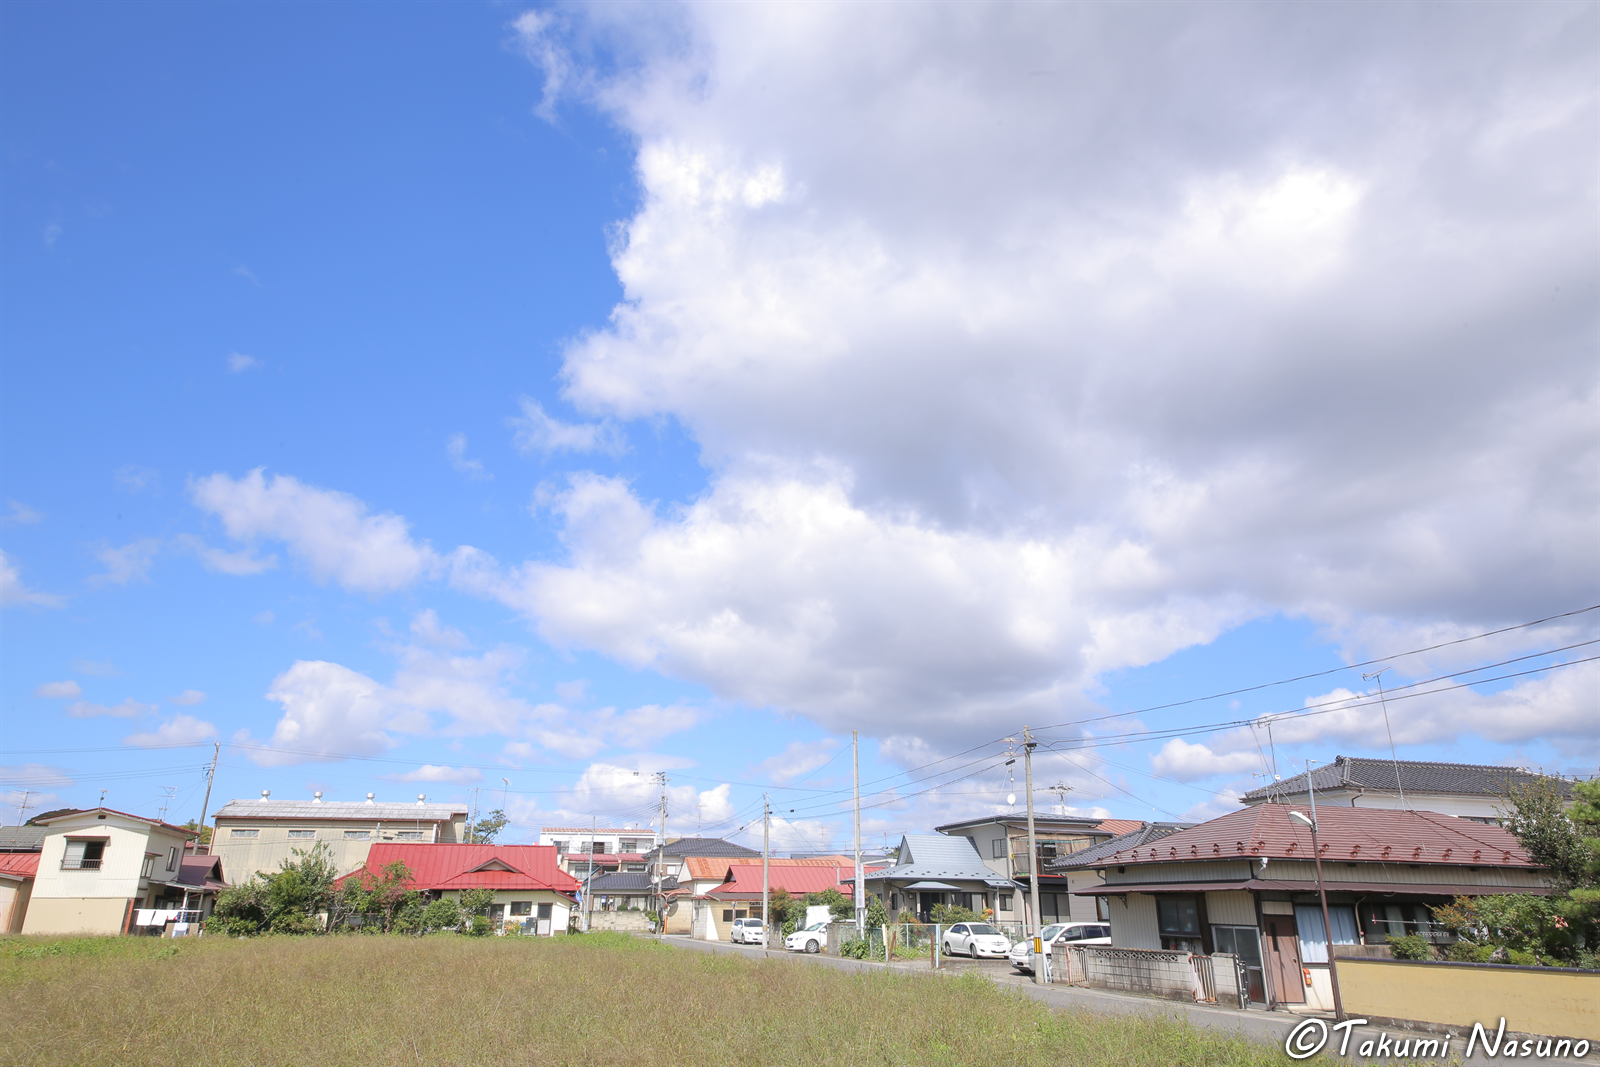 Big Clouds over Tanagura Town